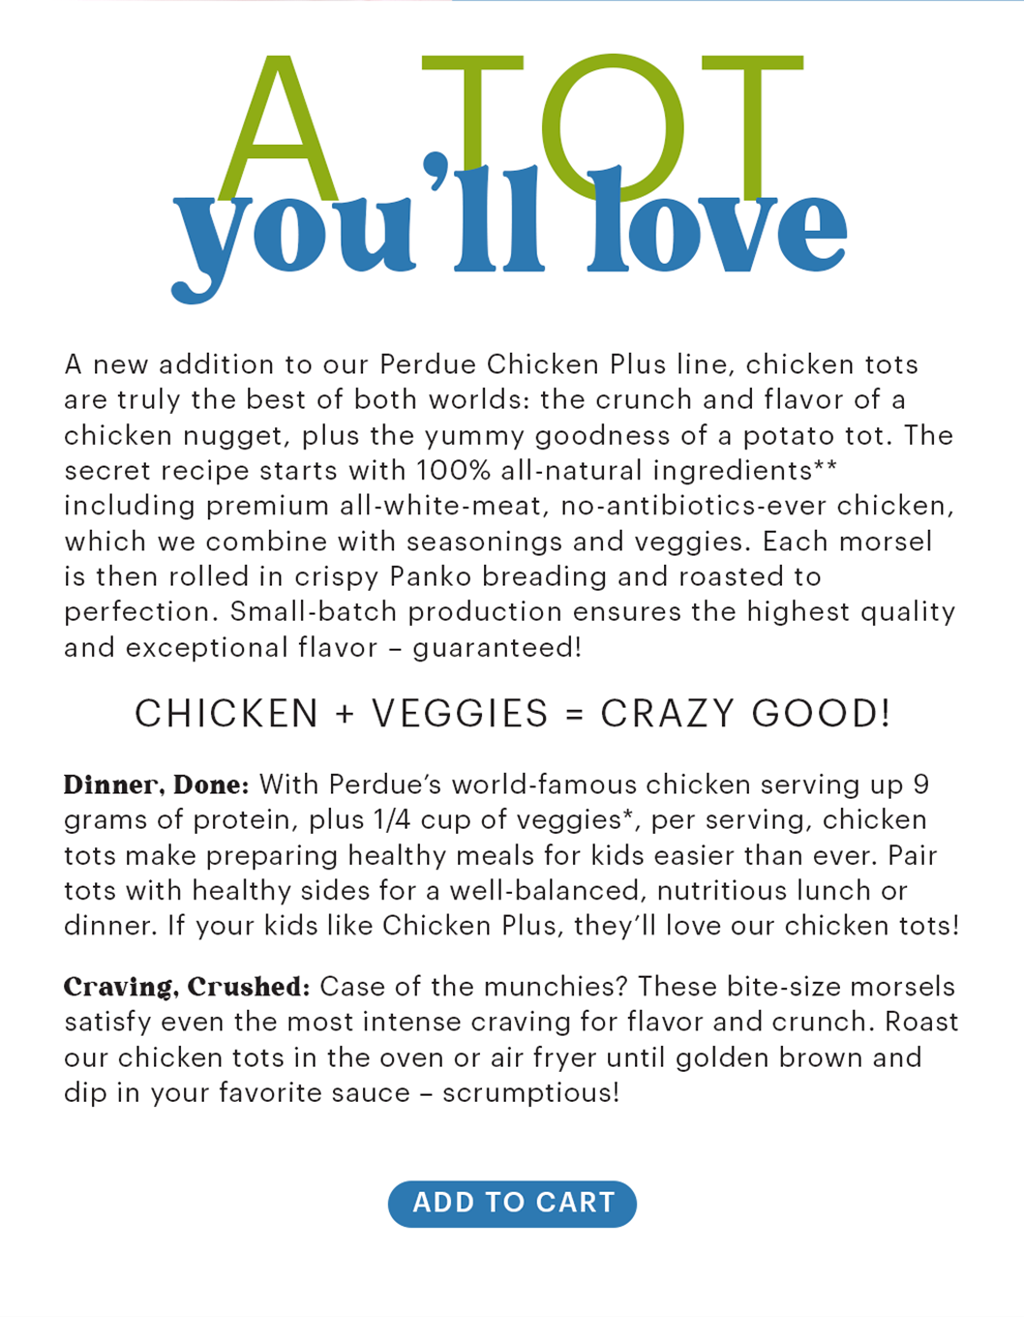 how are Perdue Chicken Tots made